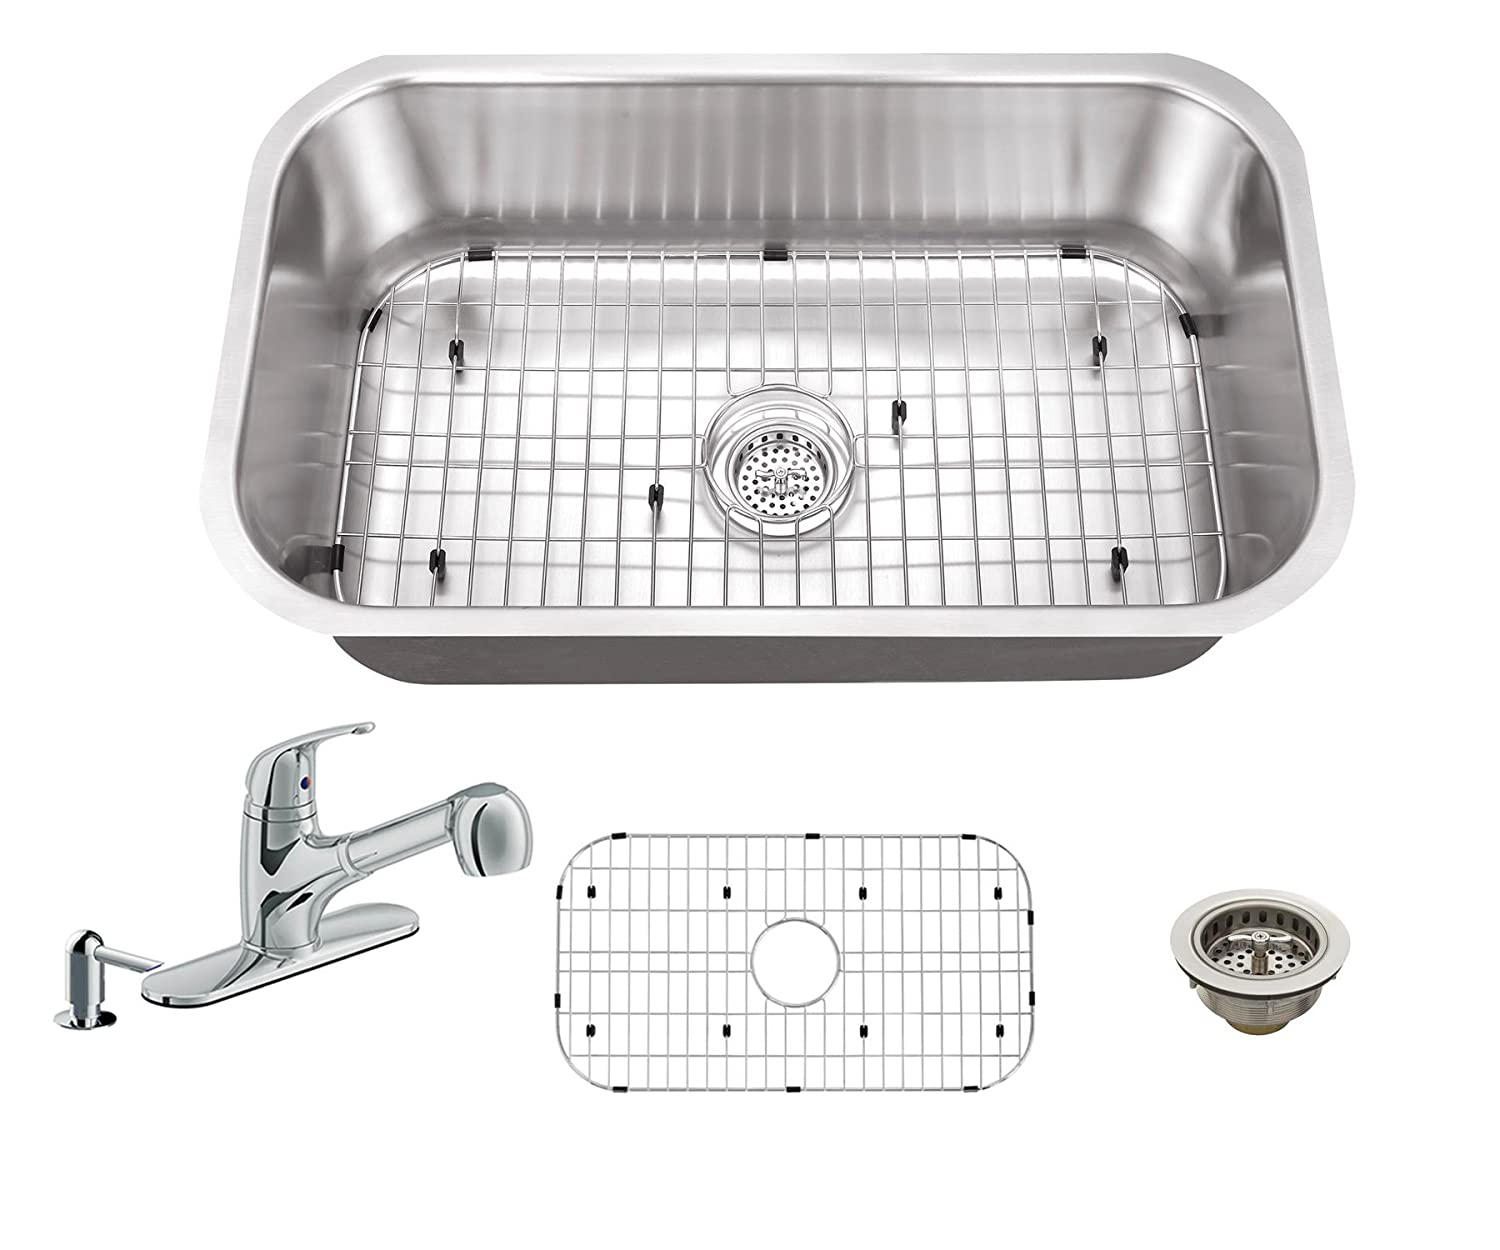 31-1/2-in x 18-1/4-in 16 Gauge Stainless Steel Single Bowl Kitchen Sink with Low Profile Pull Out Kitchen Faucet